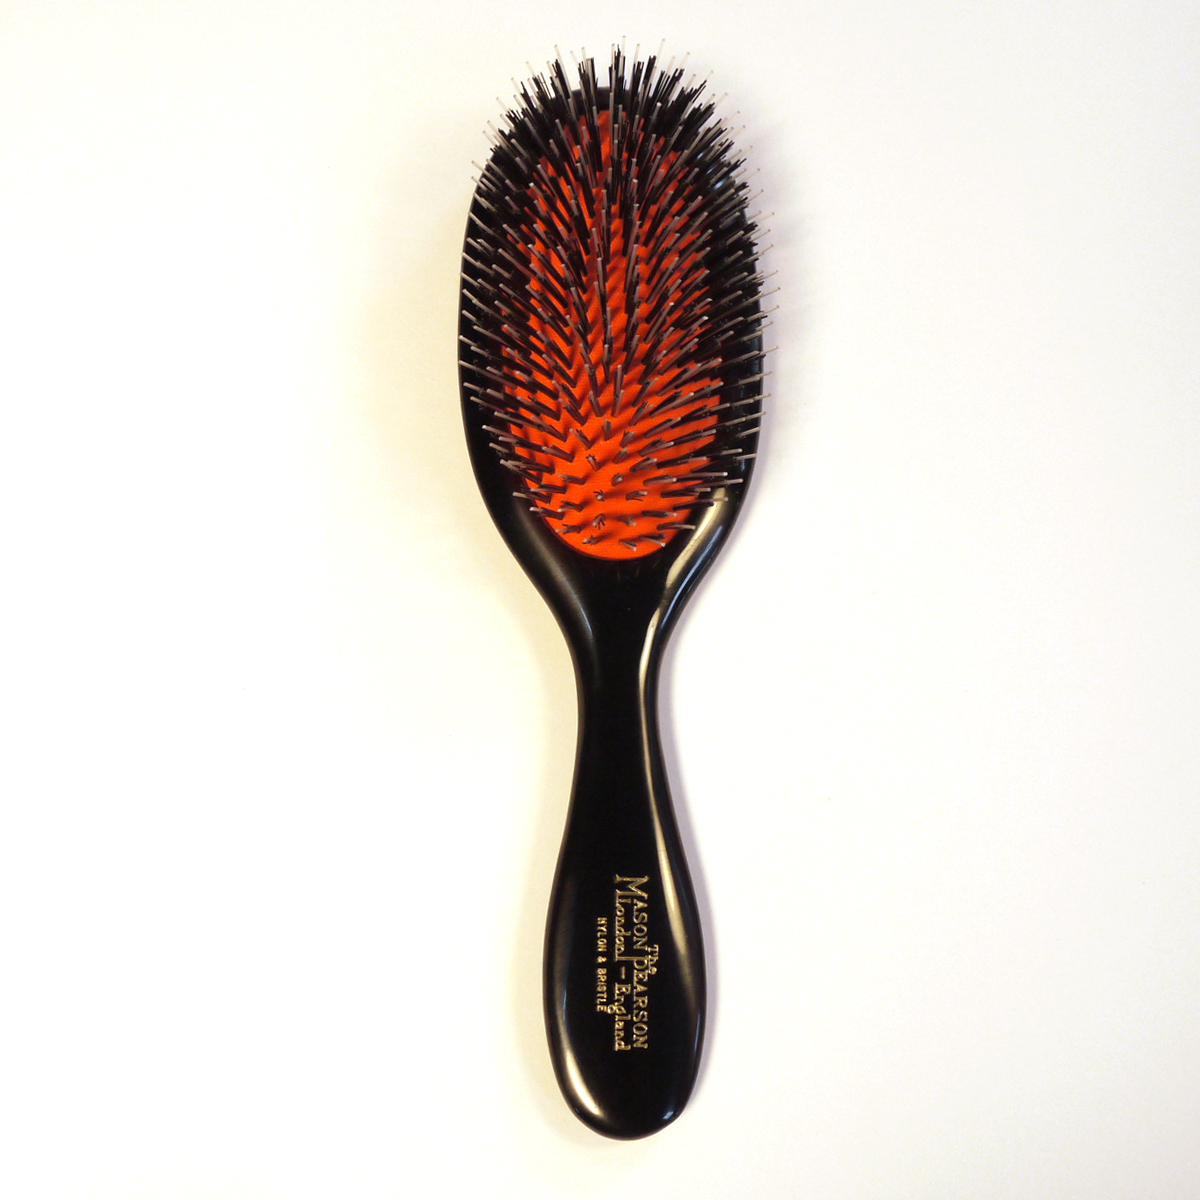 Handy Mason Pearson Bristle/Nylon mix